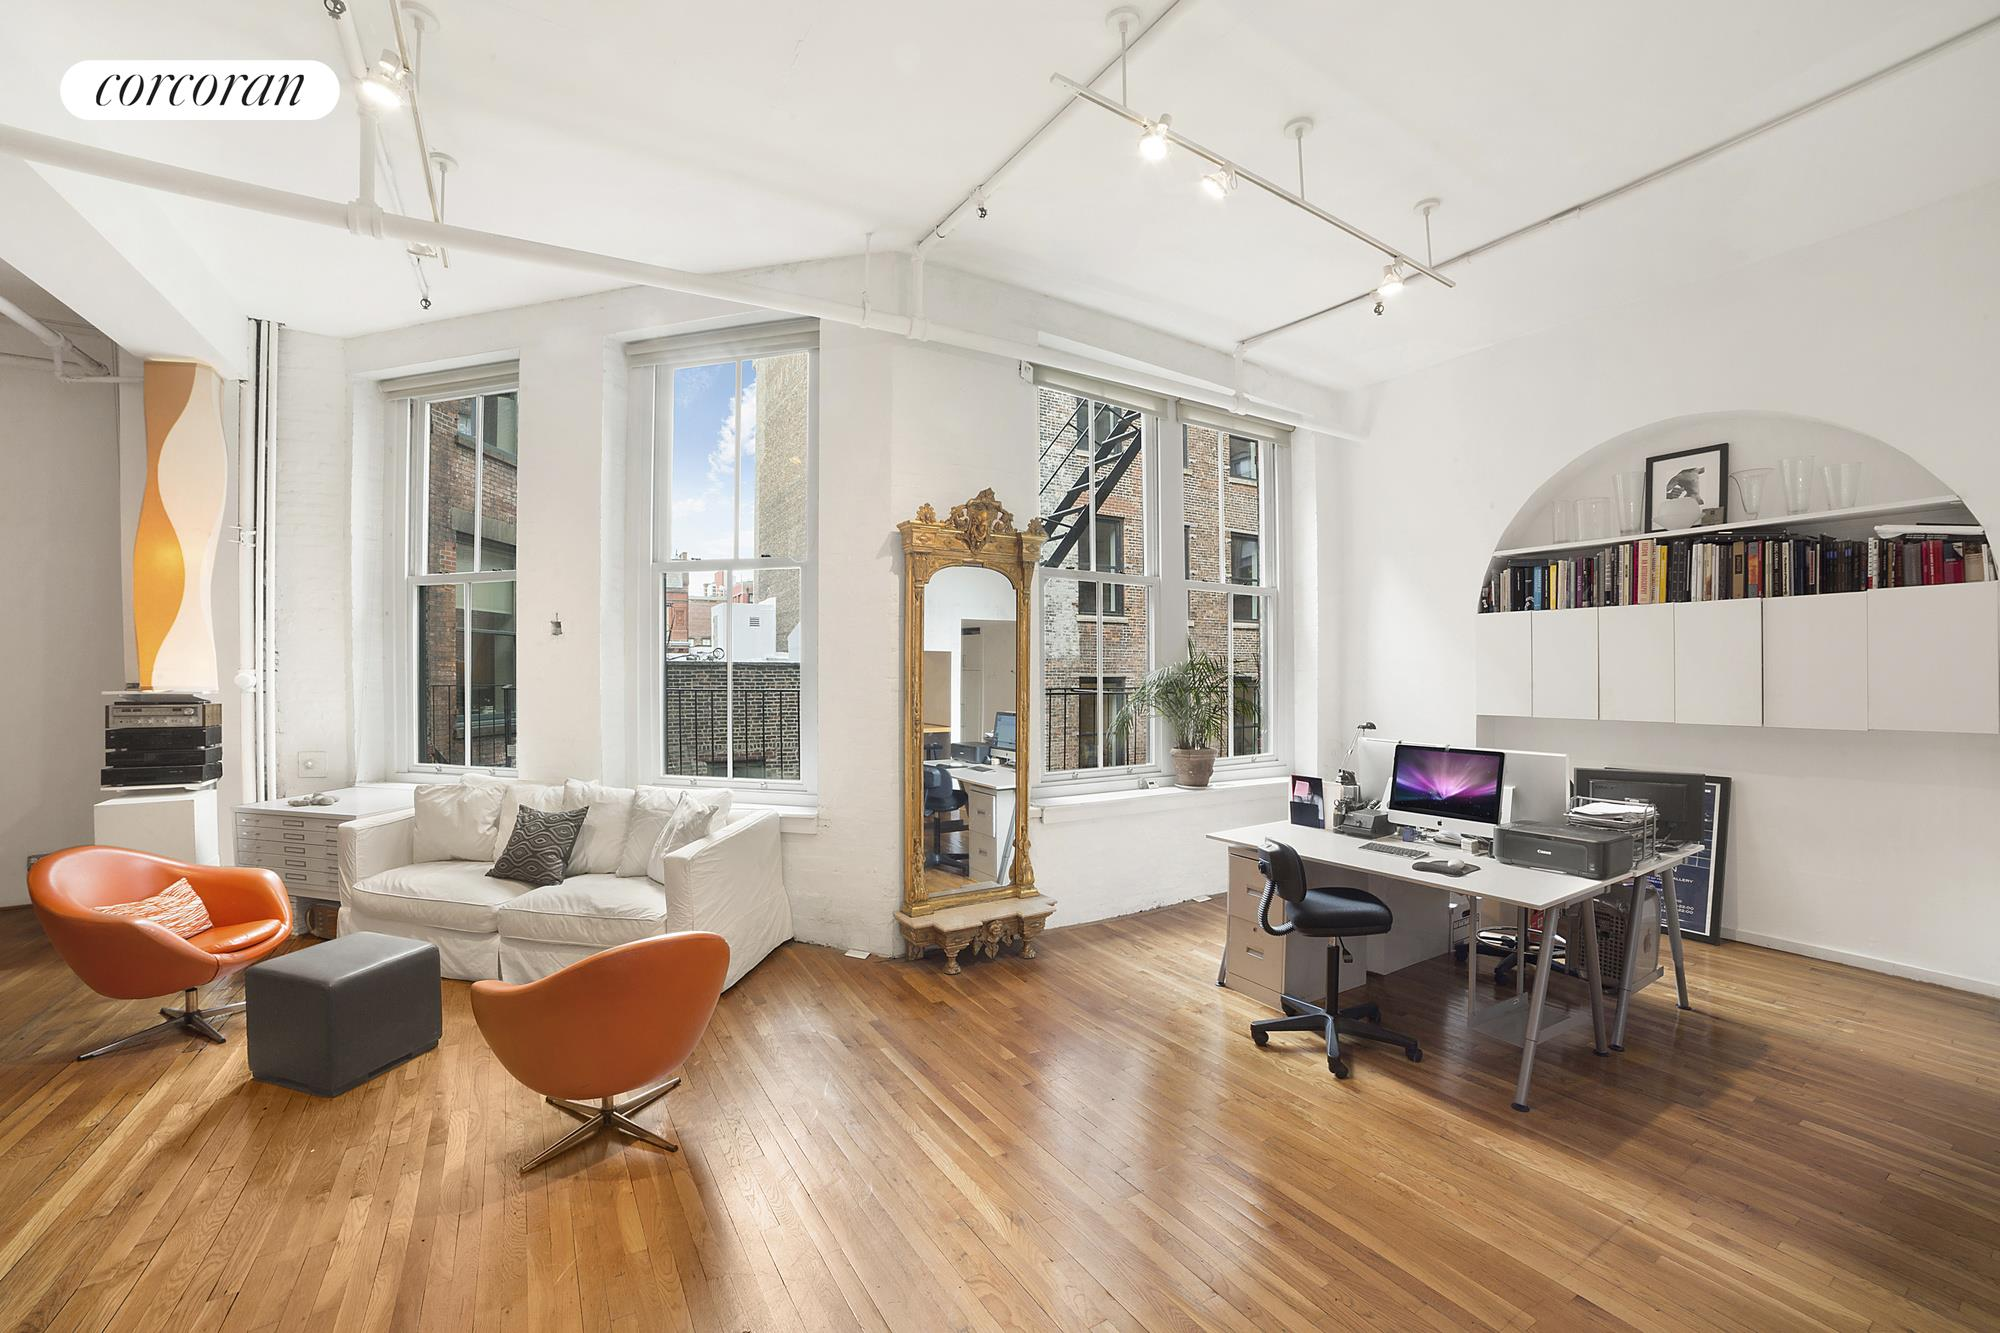 66 Crosby Street, 5F, 4 Brand new oversized double-pane windows